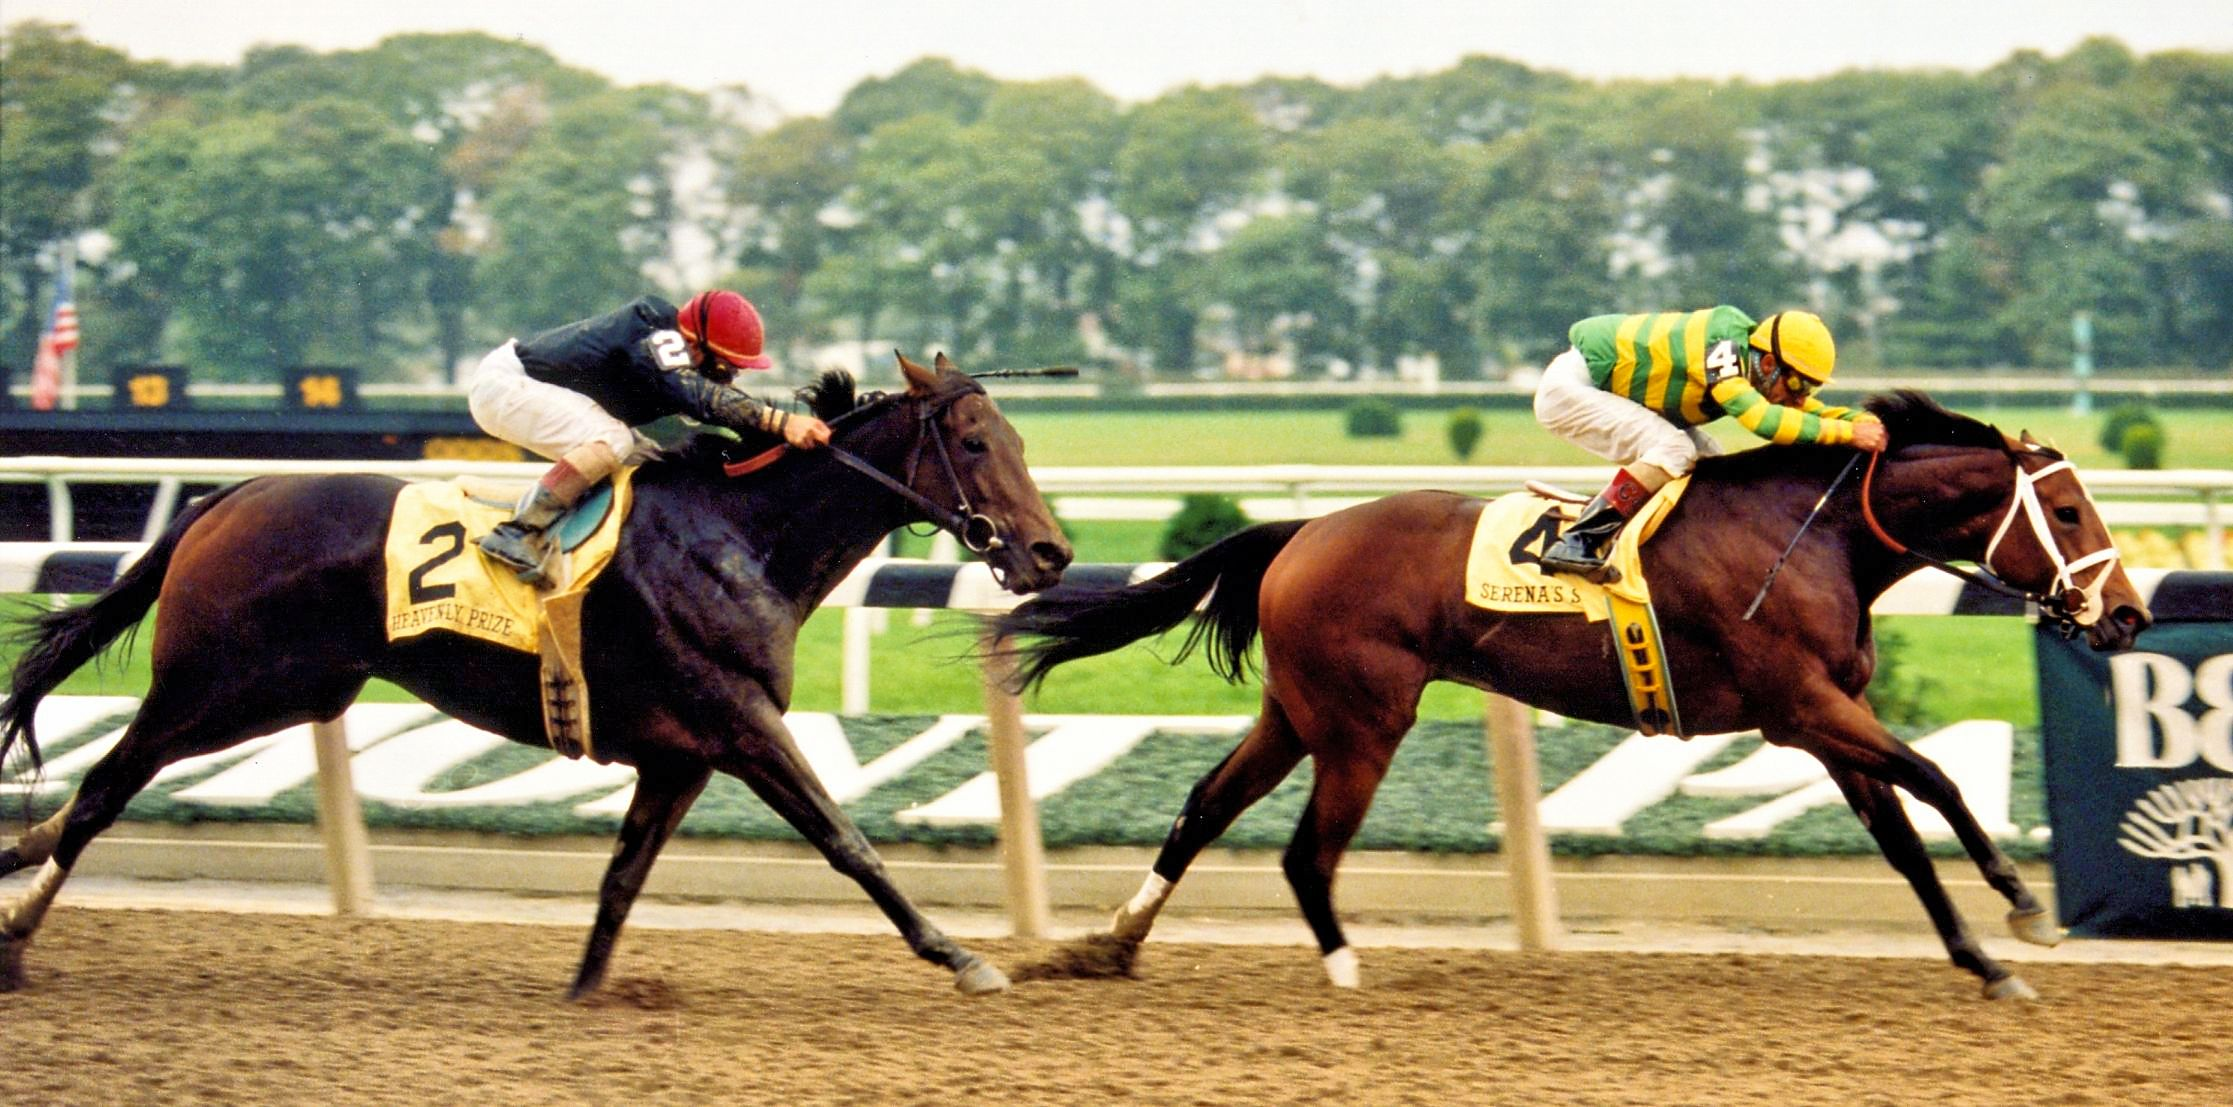 Serena's Song (Gary Stevens up) defeating Heavenly Prize in the 1995 Beldame at Belmont Park (Barbara D. Livingston/Museum Collection)